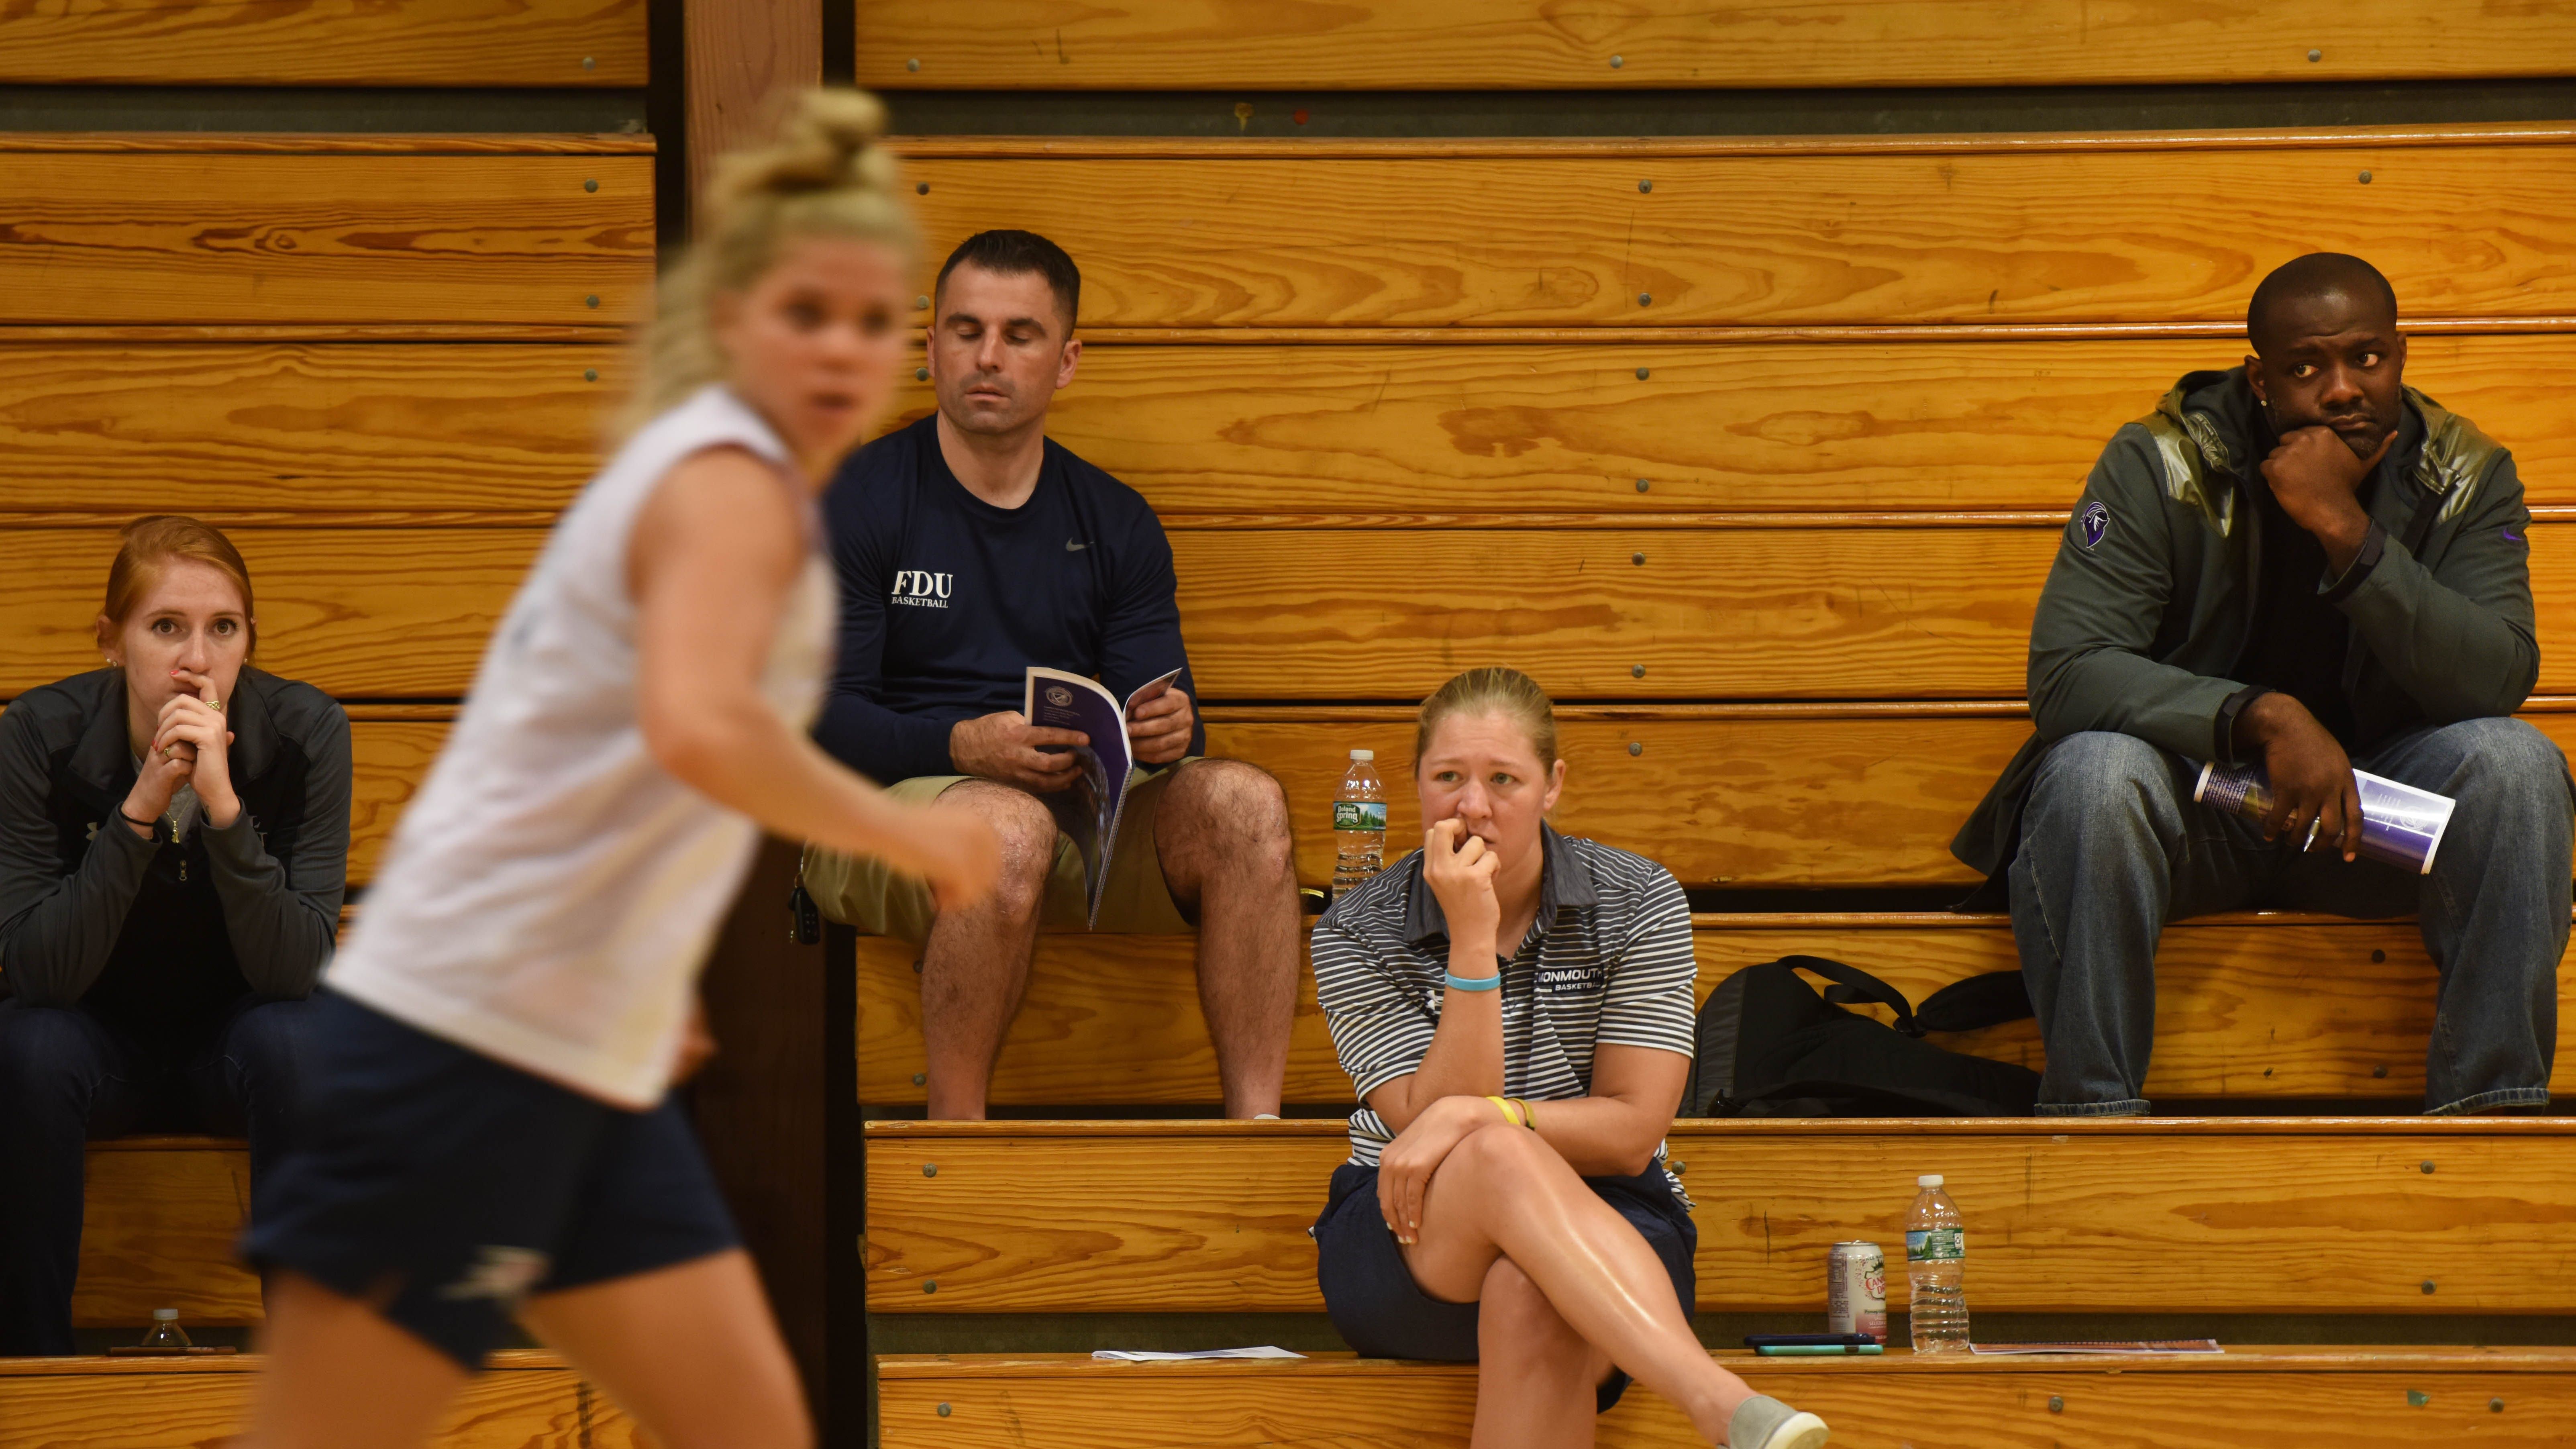 Coaches watch Saddle River Day's Open Gym.